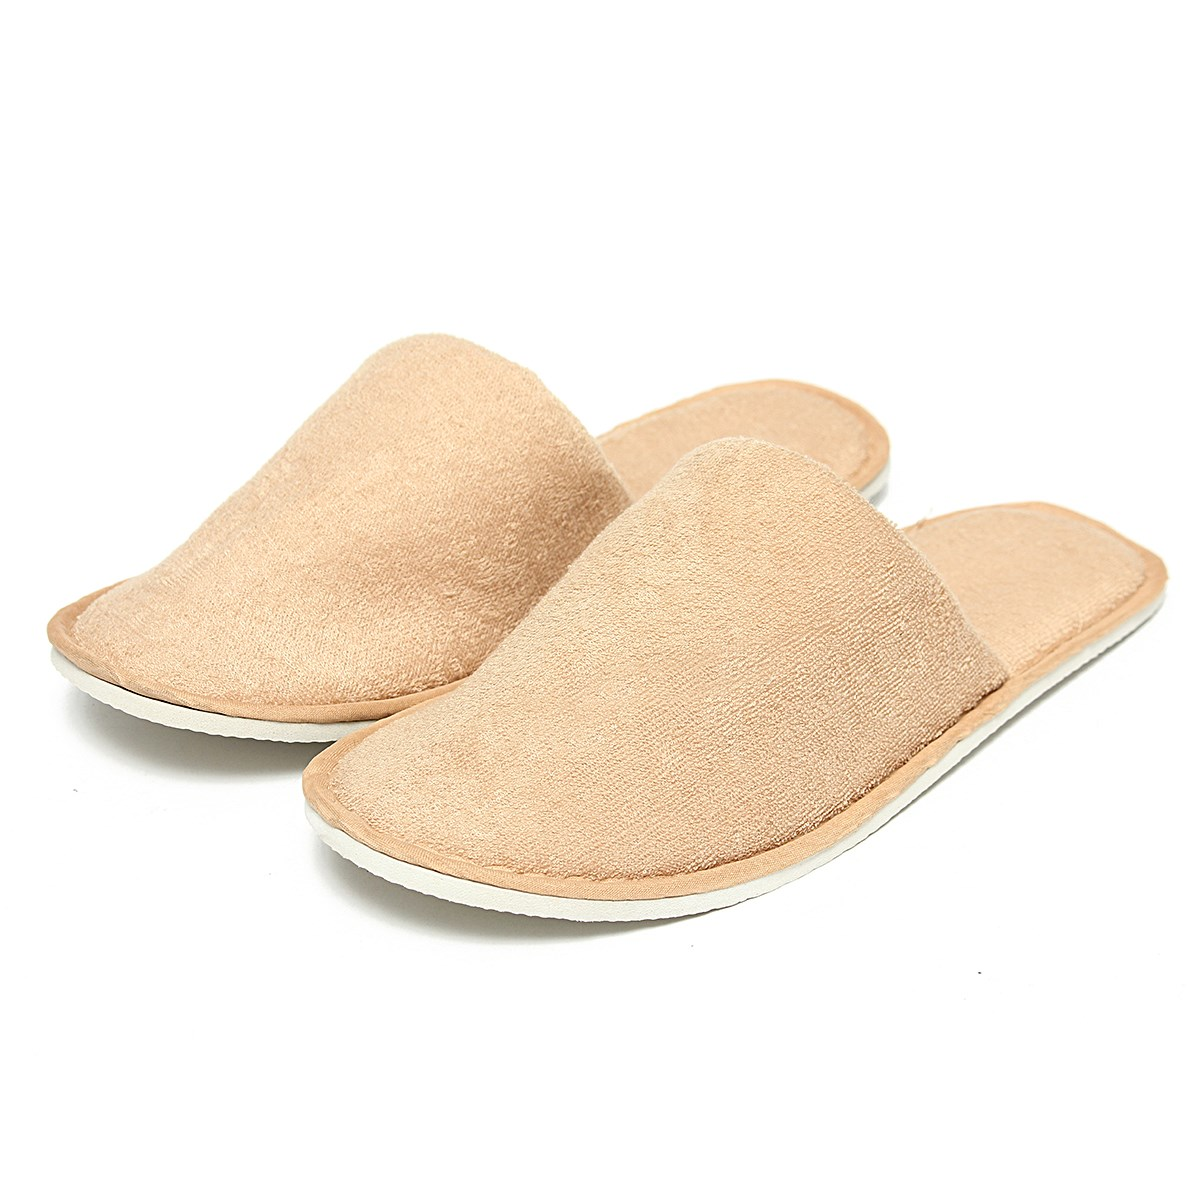 Unisex 5pair Lot Breathable Disposable Spa Hotel Slippers Women Men Home Indoor Shoes Casual